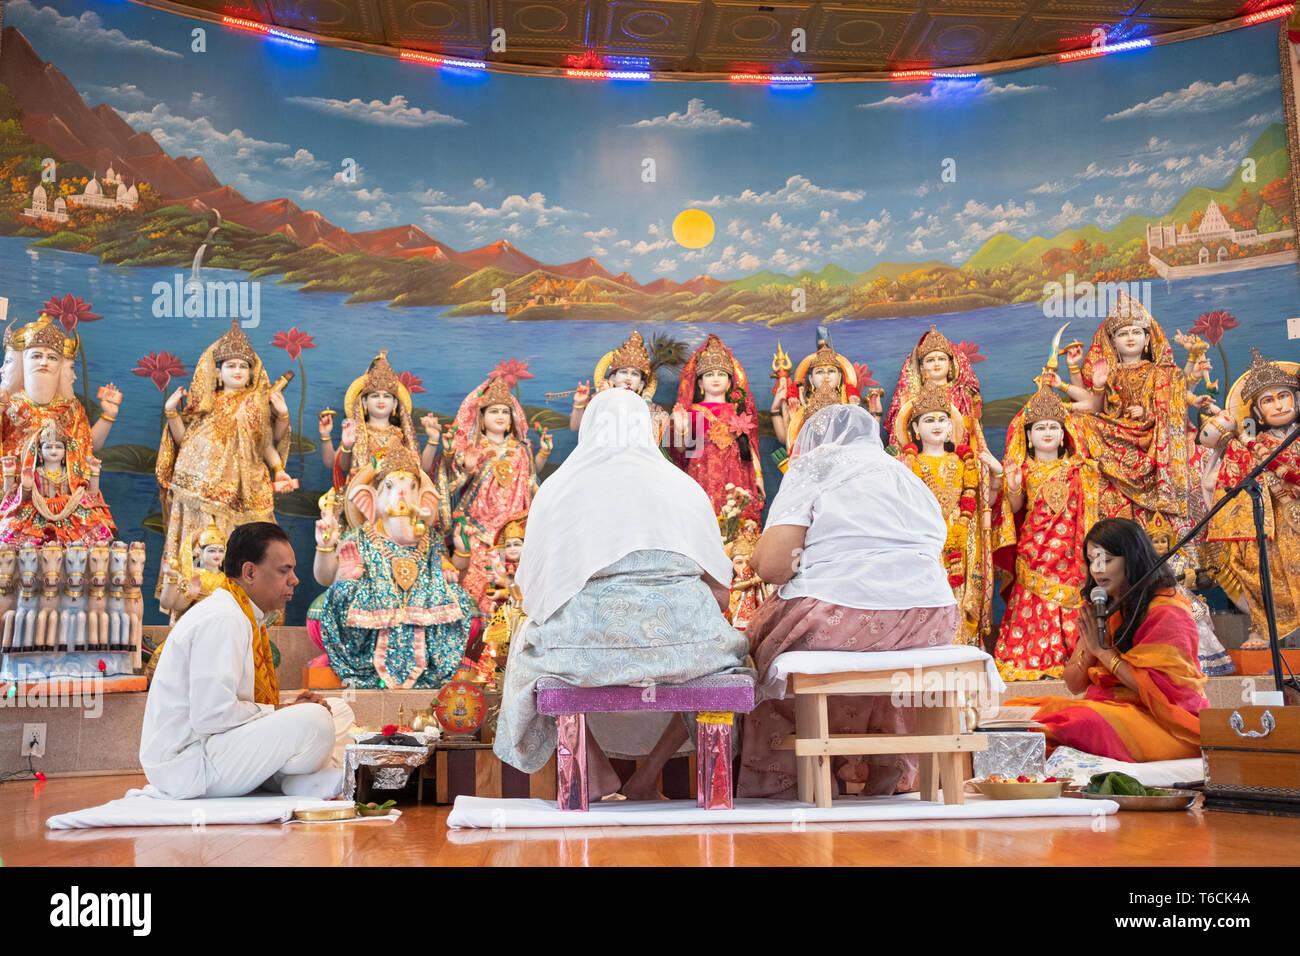 PANDITA. A female pandit leads Sunday morning services at a Hindu temple in Jamaicw, Queens, New York City Stock Photo